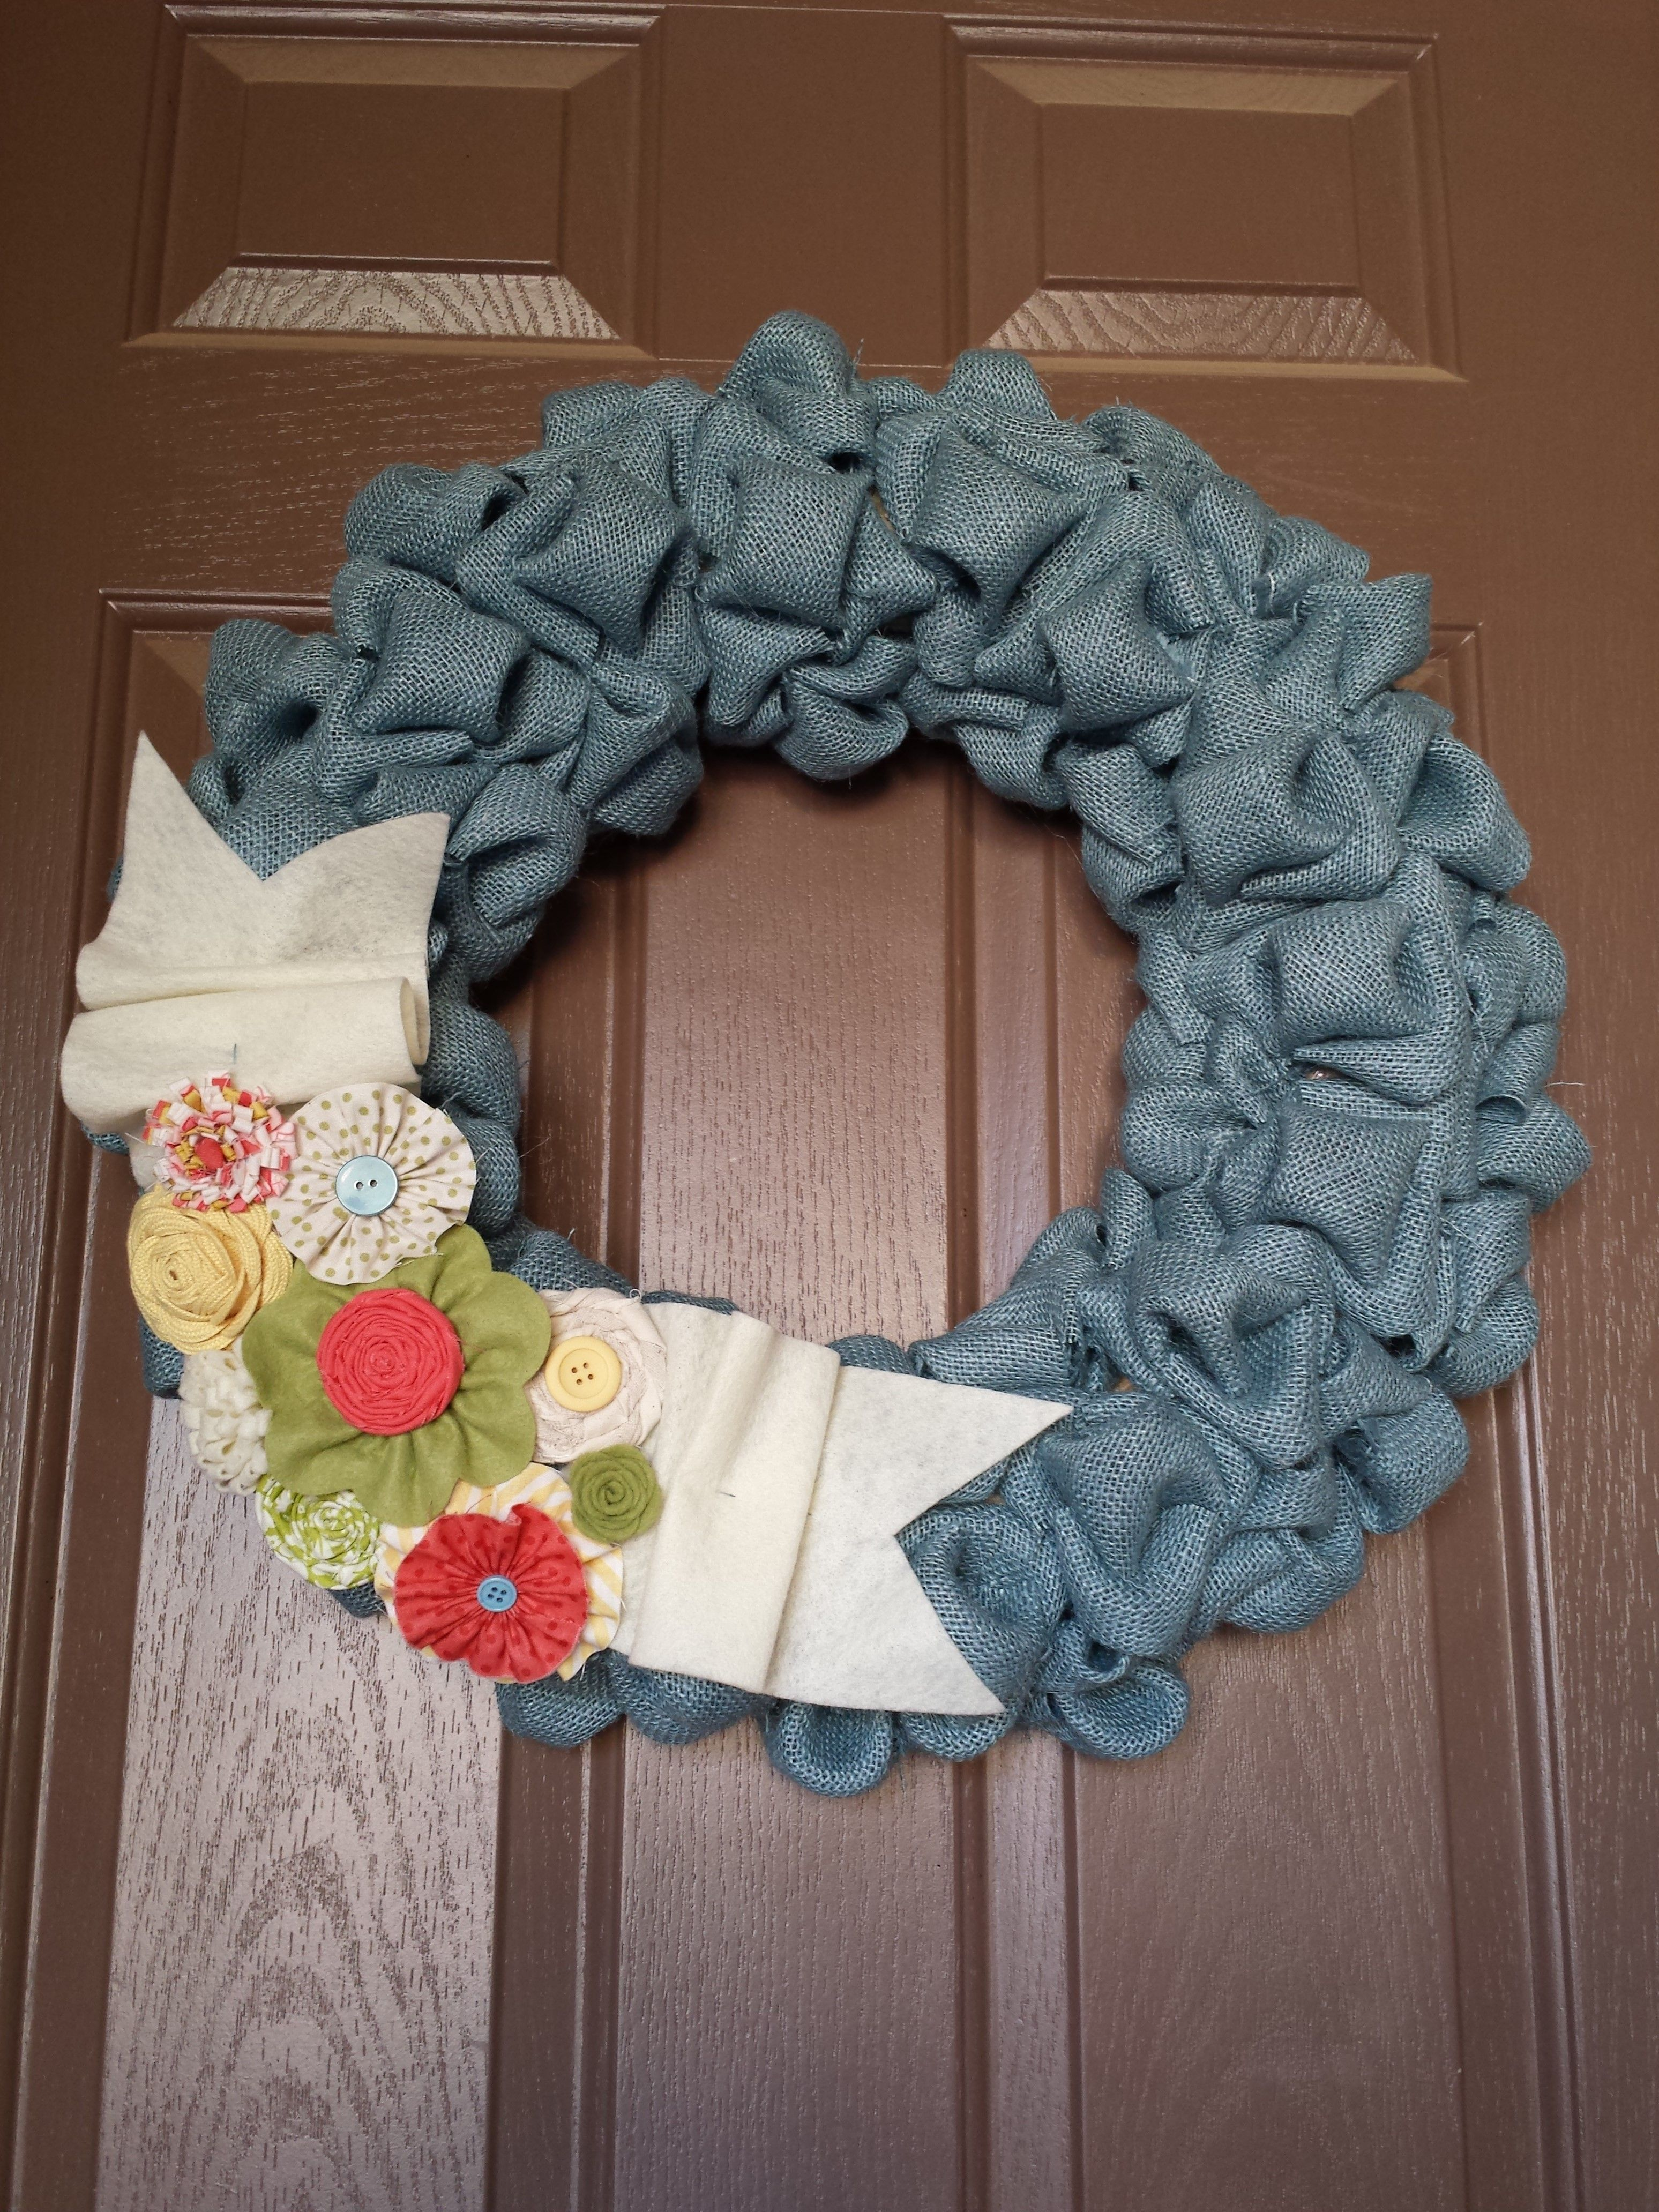 I've been wanting to make a candy cane wreath with some red and white burlap I had. I didn't like the small foam candy wreath forms. I decided to use a pool noodle.